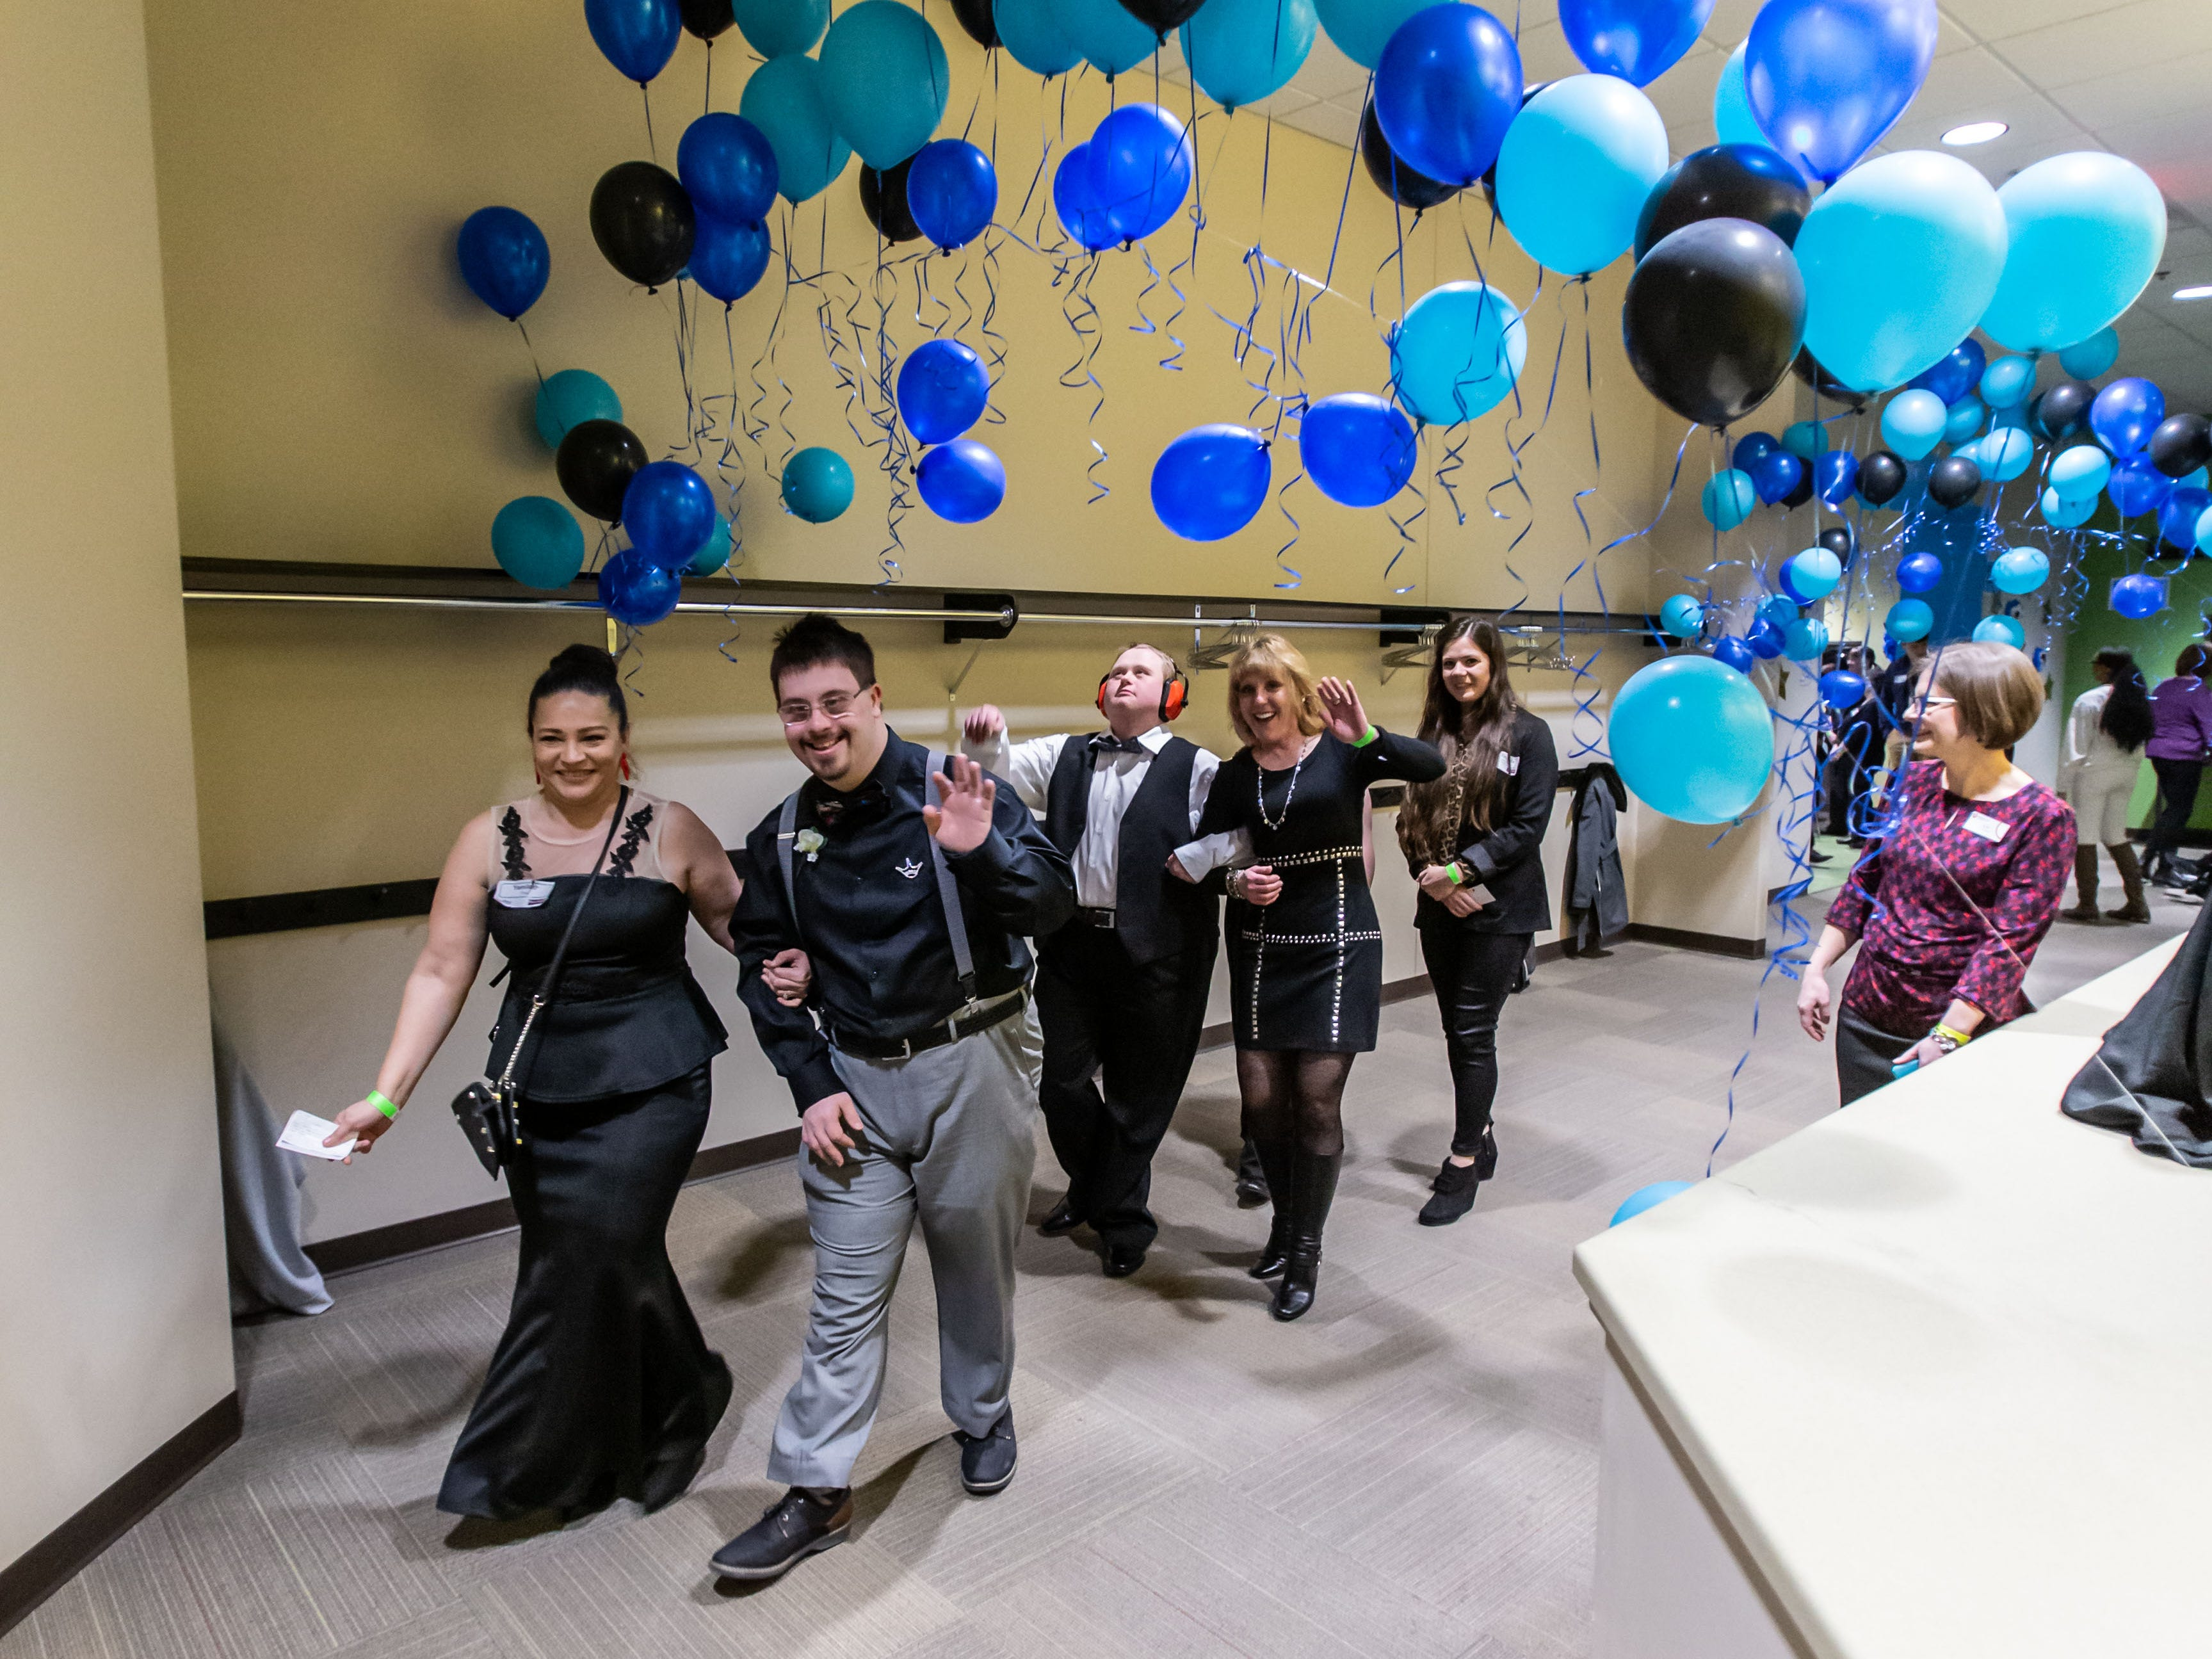 Guests and their chaperones enjoy a festive atmosphere during the Night to Shine Prom hosted by Brooklife Church in Mukwonago on Friday, Feb. 8, 2019. Night to Shine is a unforgettable prom night experience for people with special needs sponsored by the Tim Tebow Foundation. The event is hosted by local churches in all 50 states across the globe all on one night.